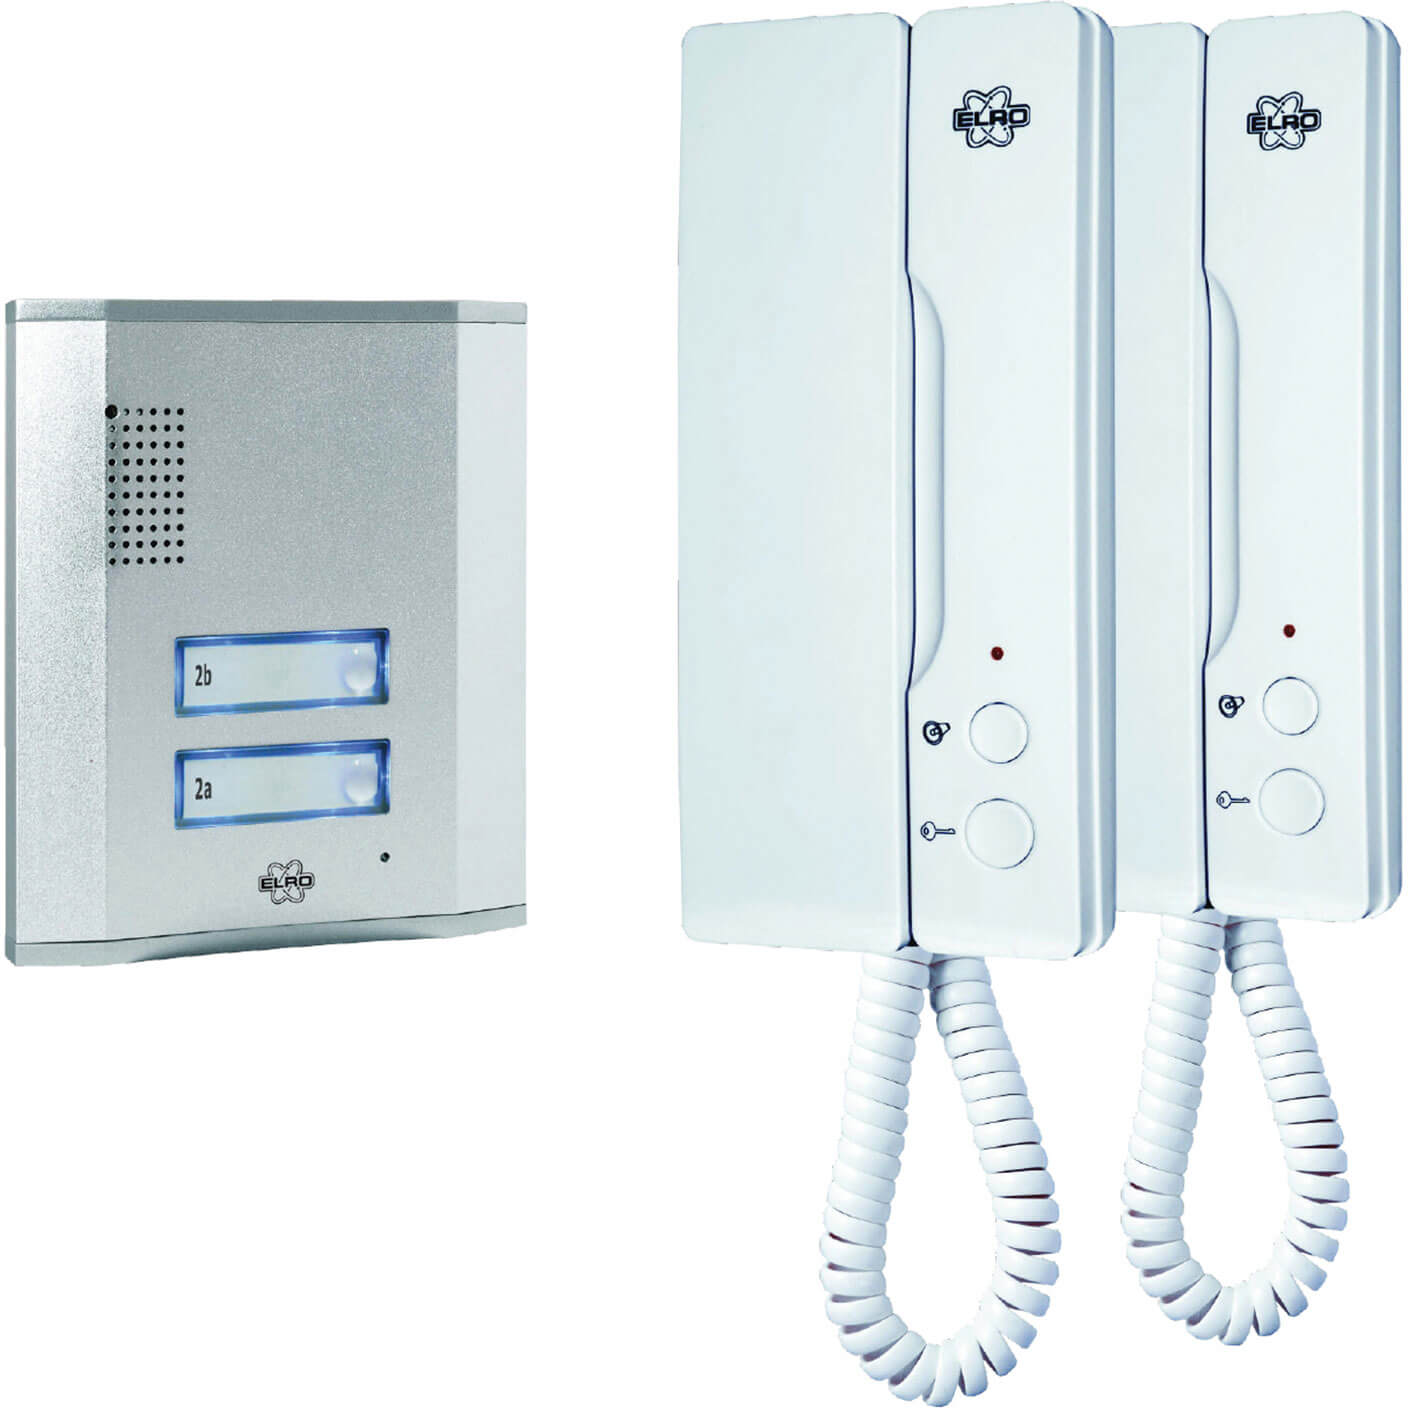 Offerta: Byron Audio Door Intercom Kit for 2 Apartments 240v